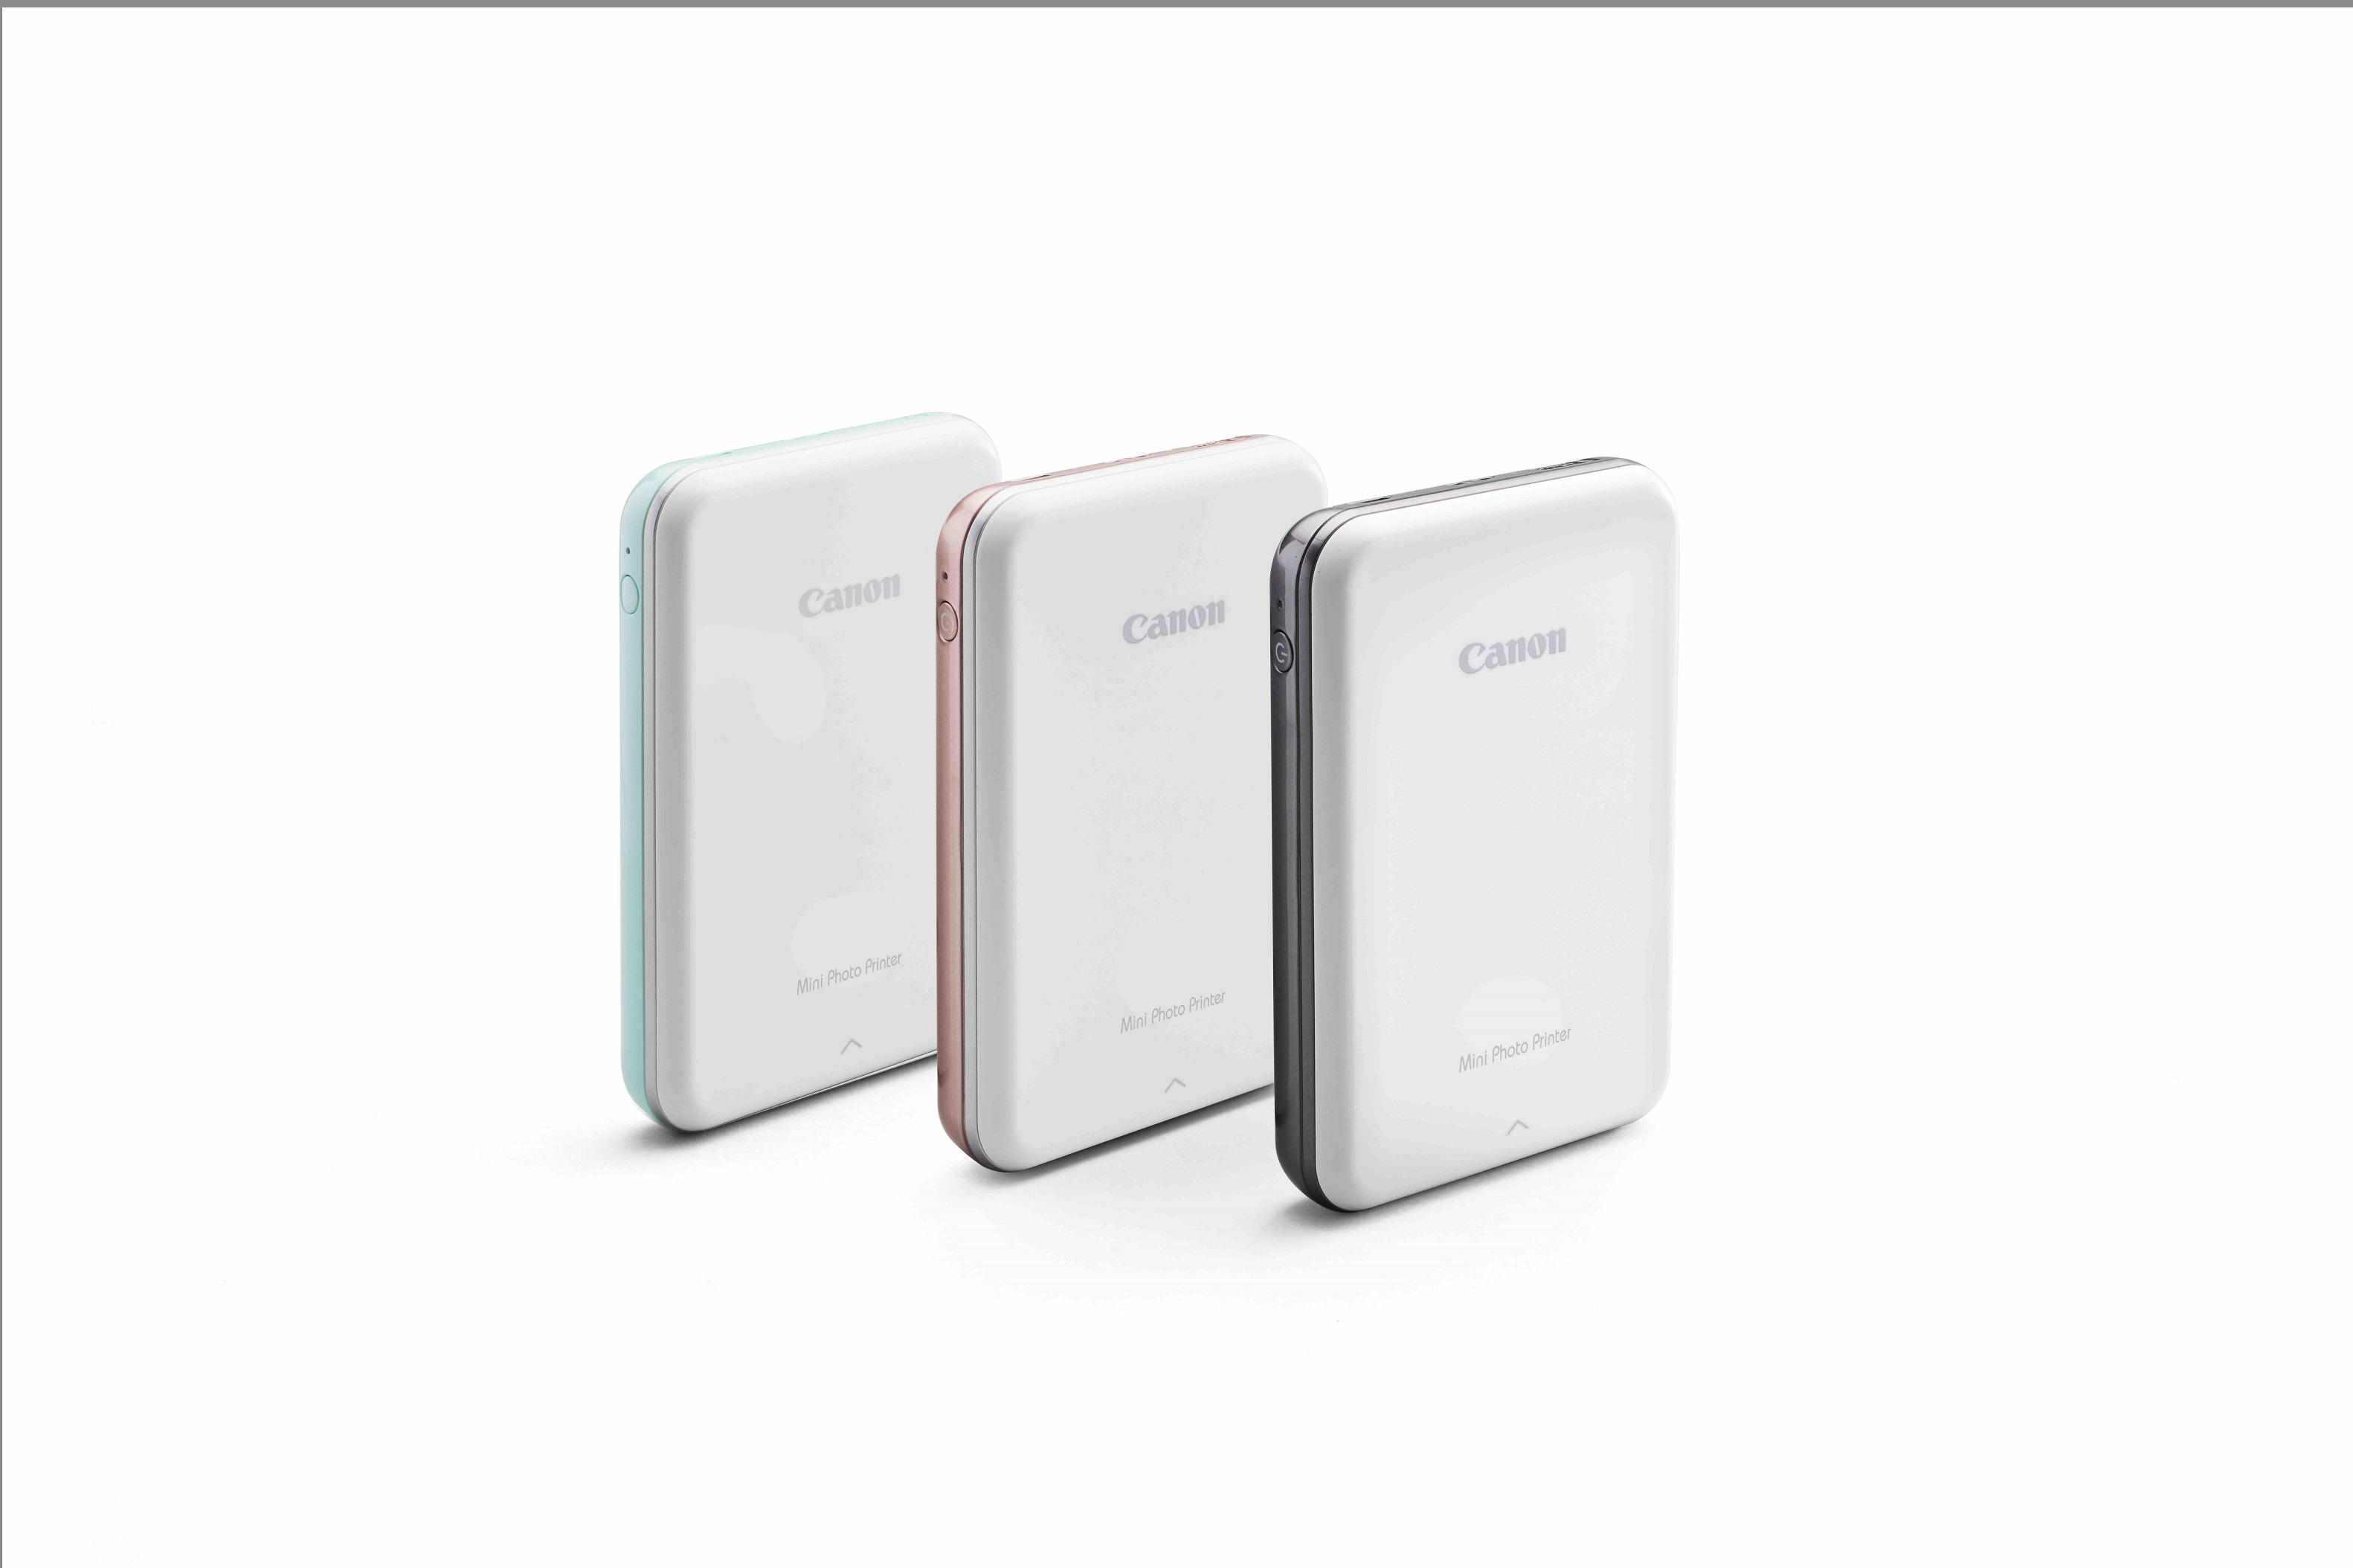 Creativity On-the-Go: Canon launches its smallest & lightest photo printer that fits your lifestyle